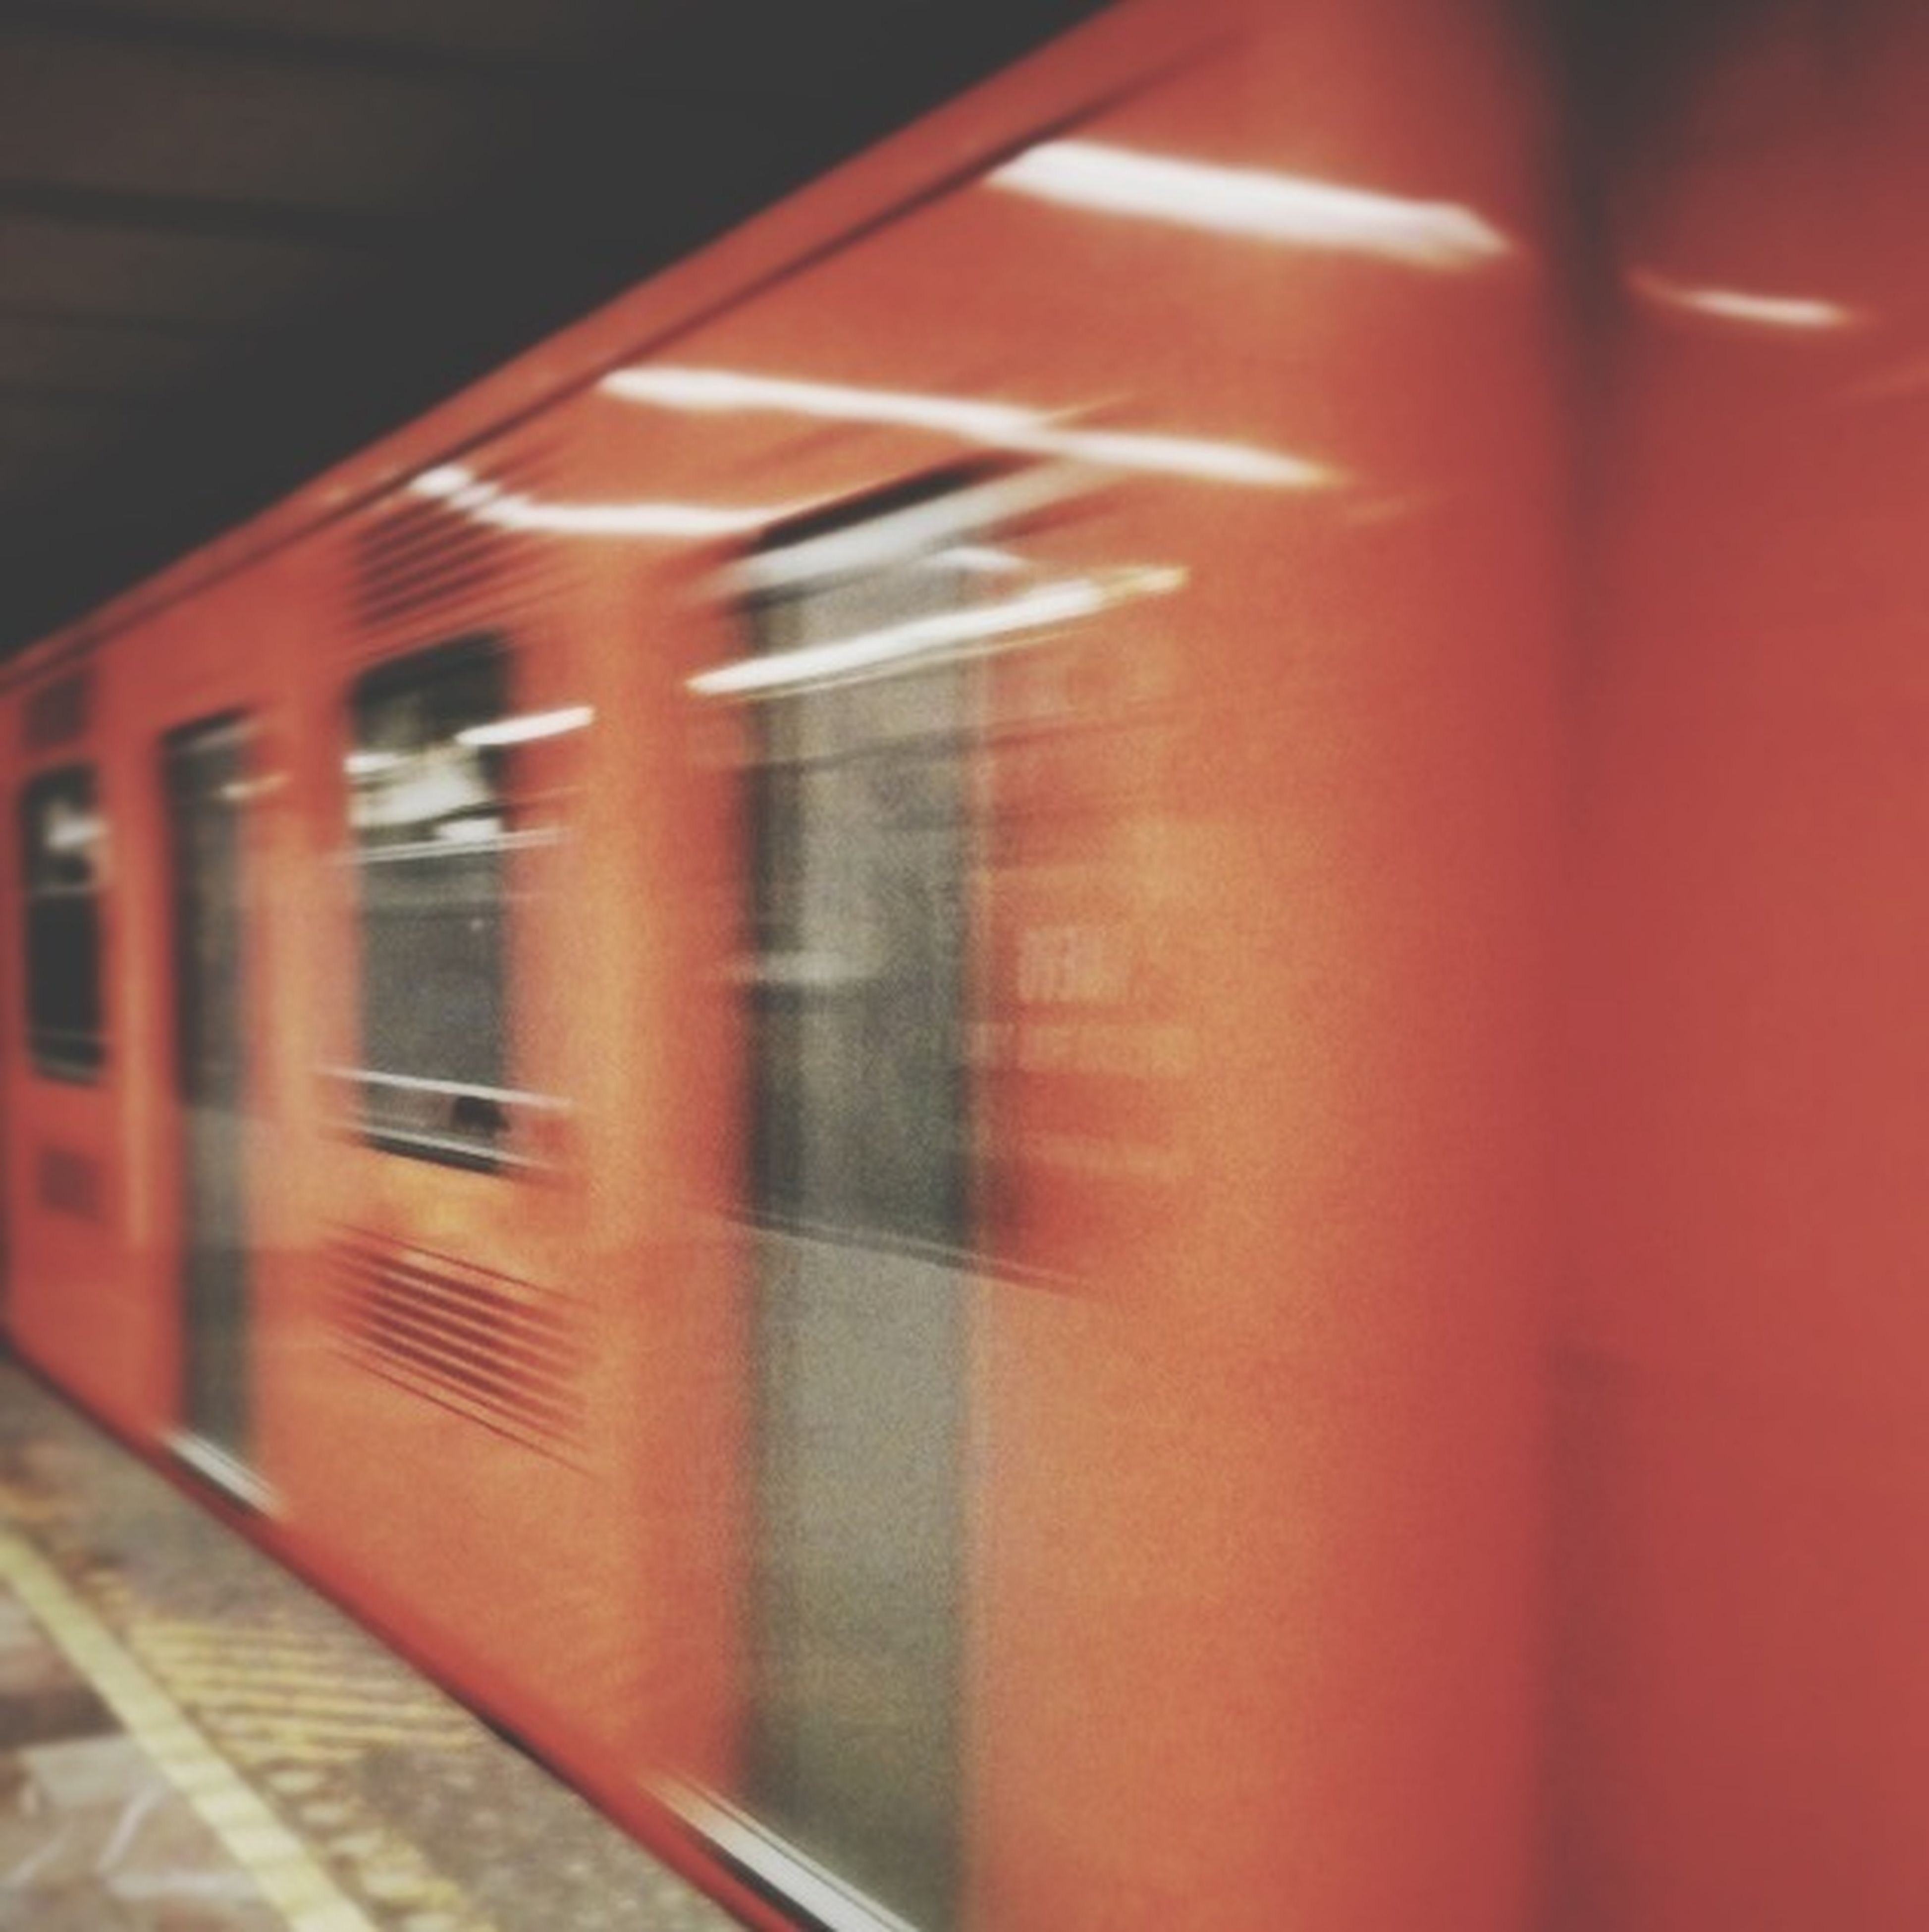 indoors, illuminated, transportation, built structure, architecture, railroad station, public transportation, rail transportation, railroad station platform, red, blurred motion, railroad track, window, wall - building feature, subway station, no people, train - vehicle, night, train, building exterior